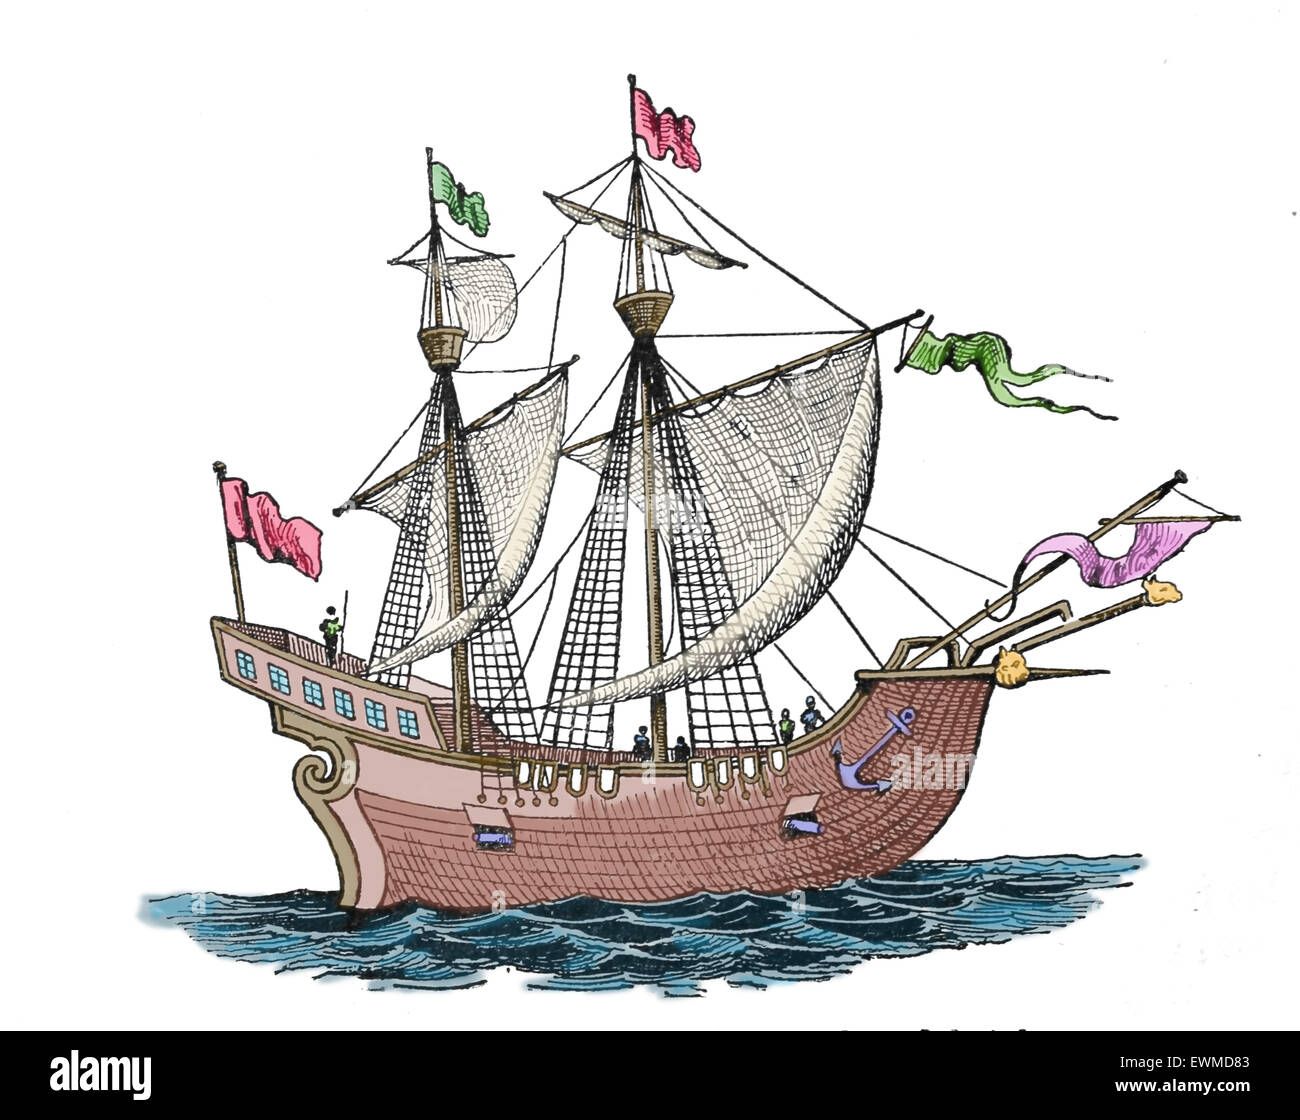 Victoria. Spanish carrack. 1st ship to successfully circumnavigate the World. 1518-19. Explorers: F. Magellan and - Stock Image